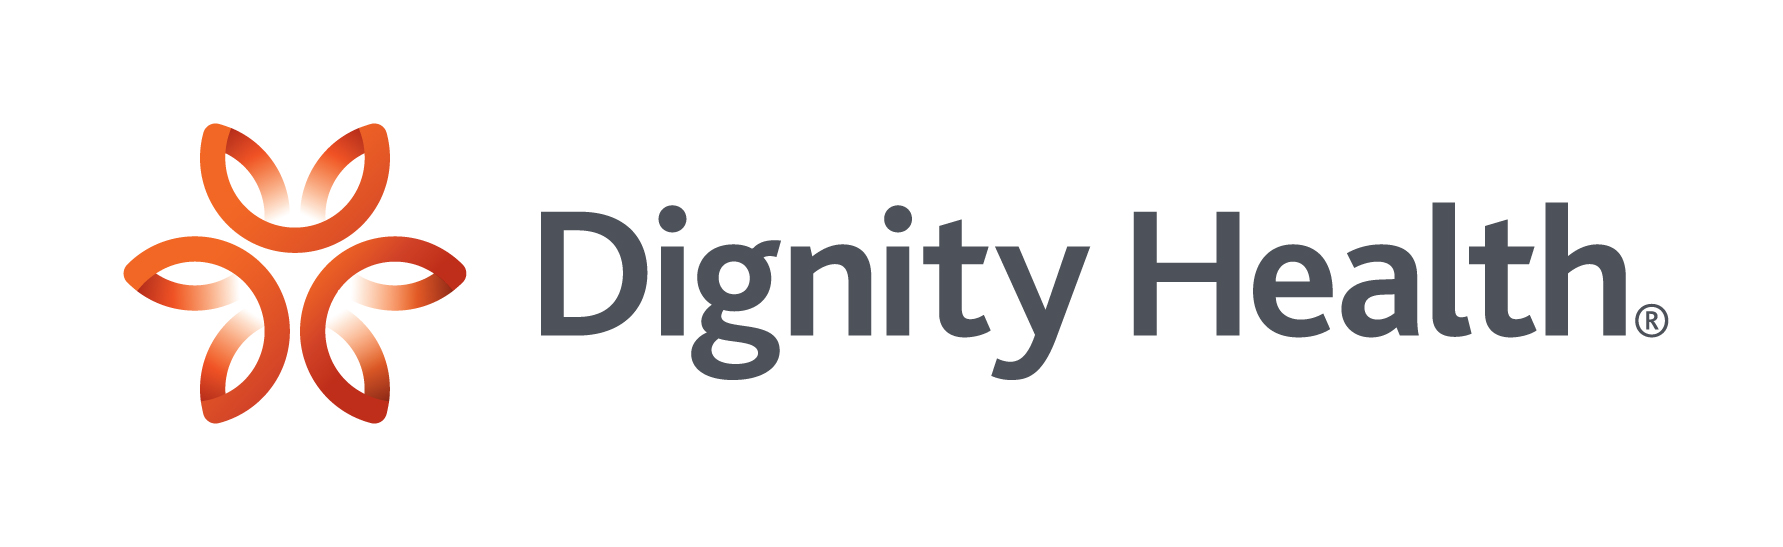 2. Dignity Health (Presenting)